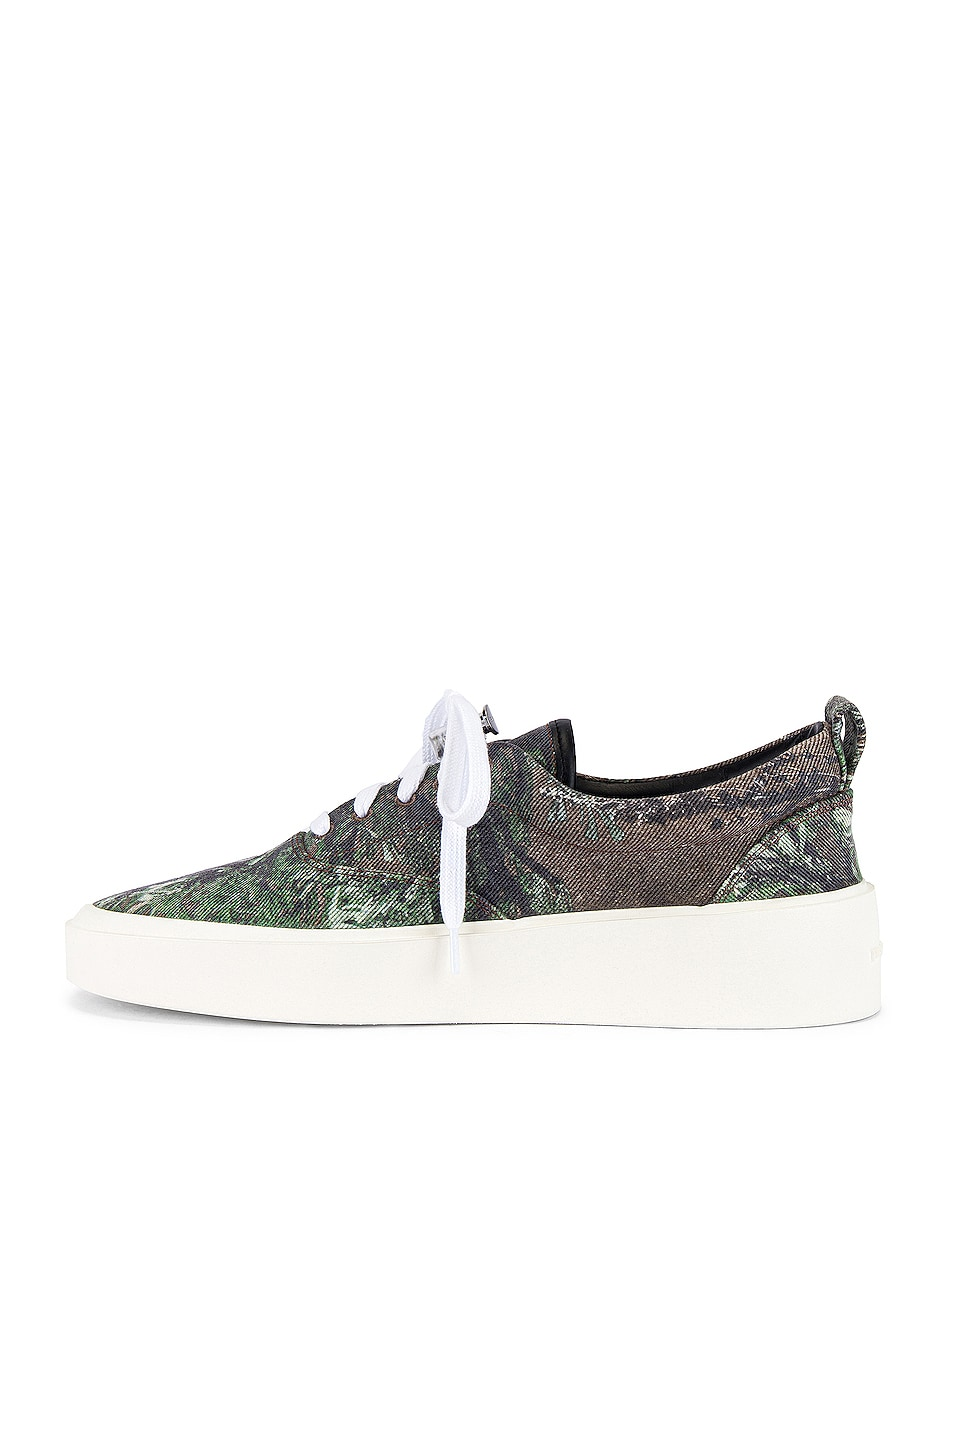 Image 5 of Fear of God 101 Lace Up Sneaker in Dark Prairie Ghost Camo